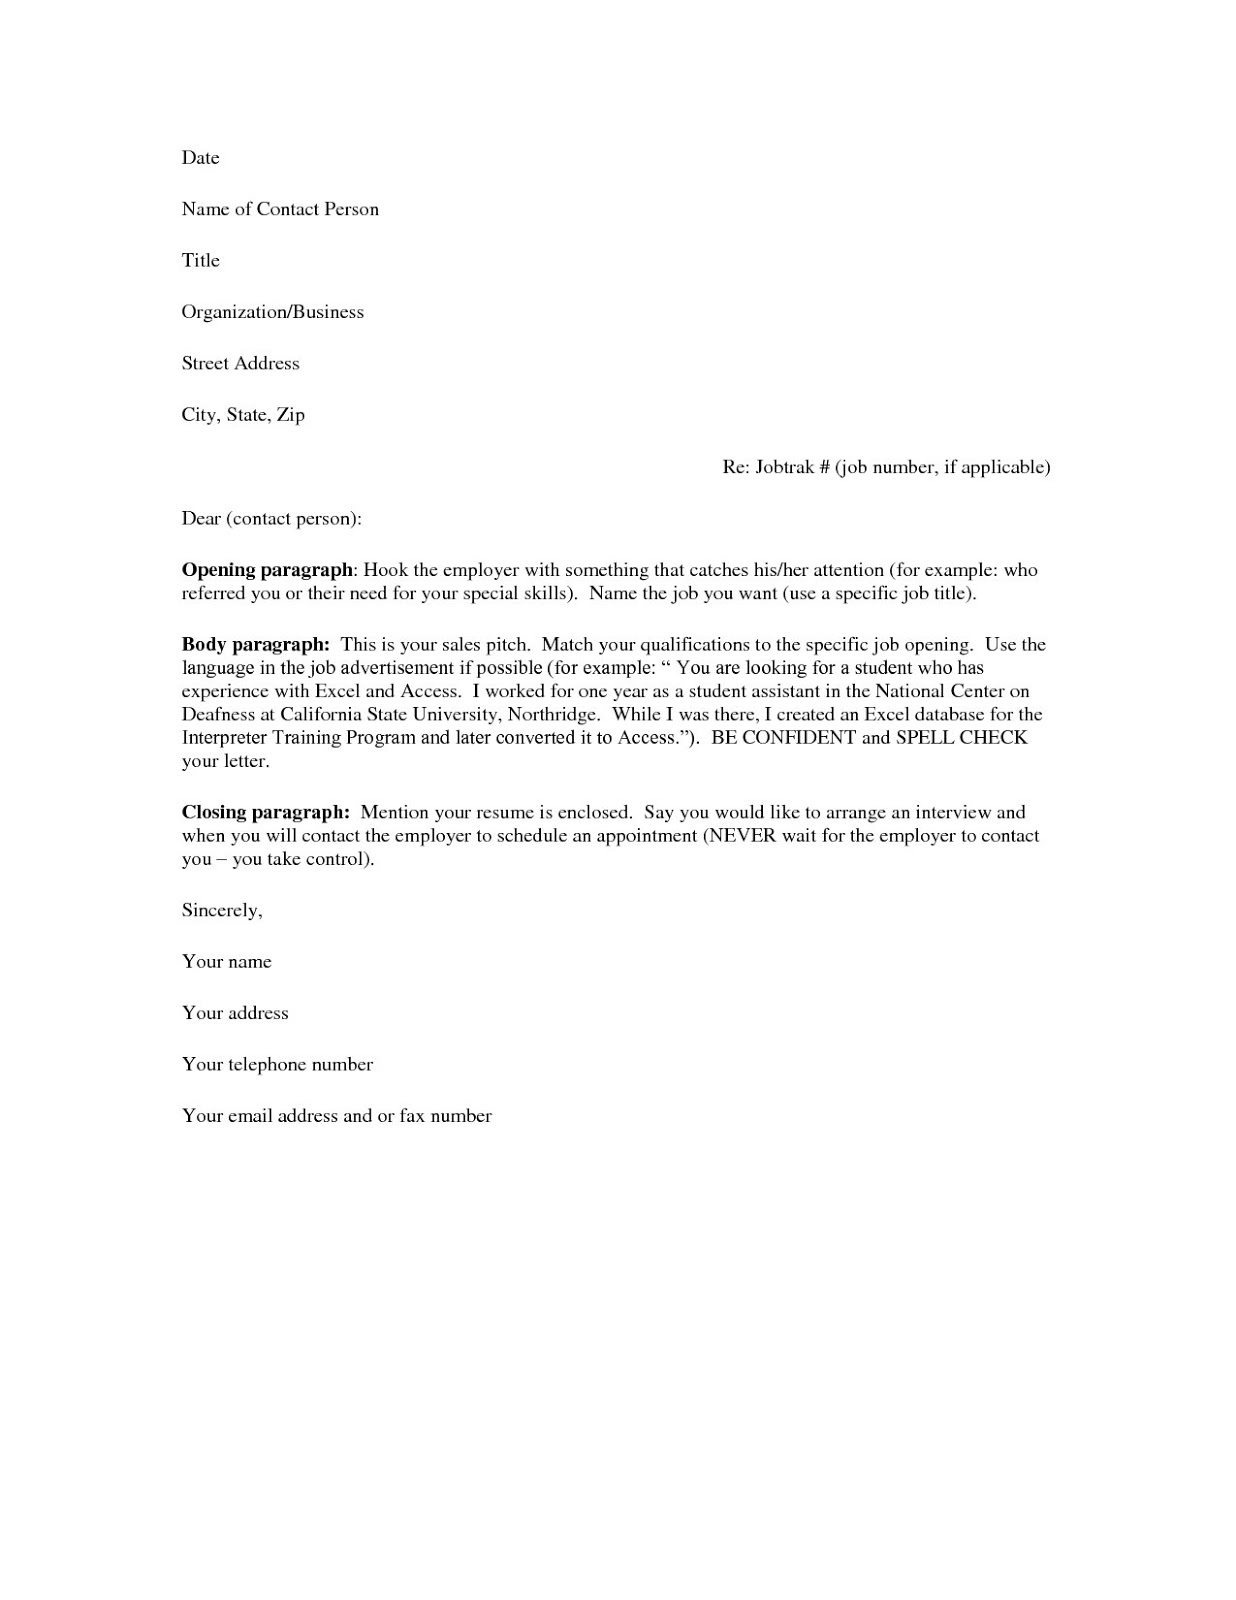 Resumes and cover letters examples